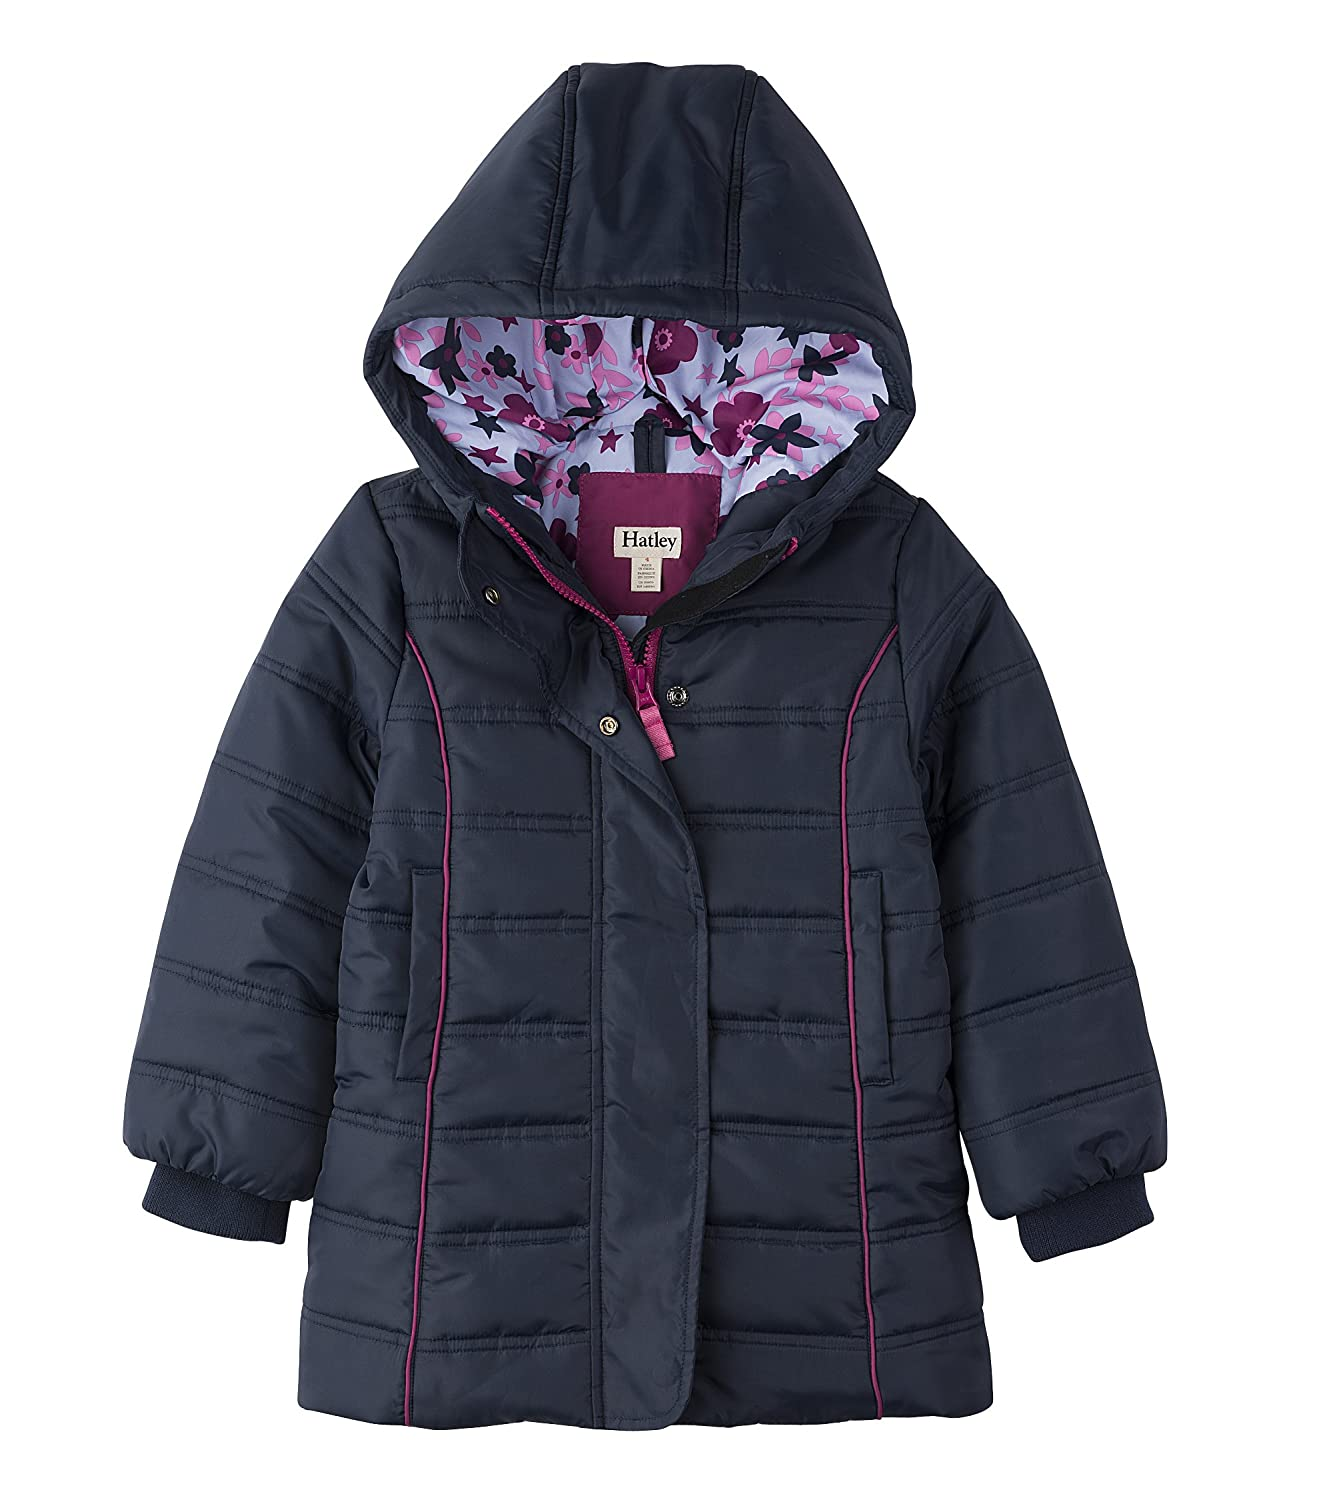 Hatley Girl's Fitted Puffer Coat Jacket SJ7NAVY318